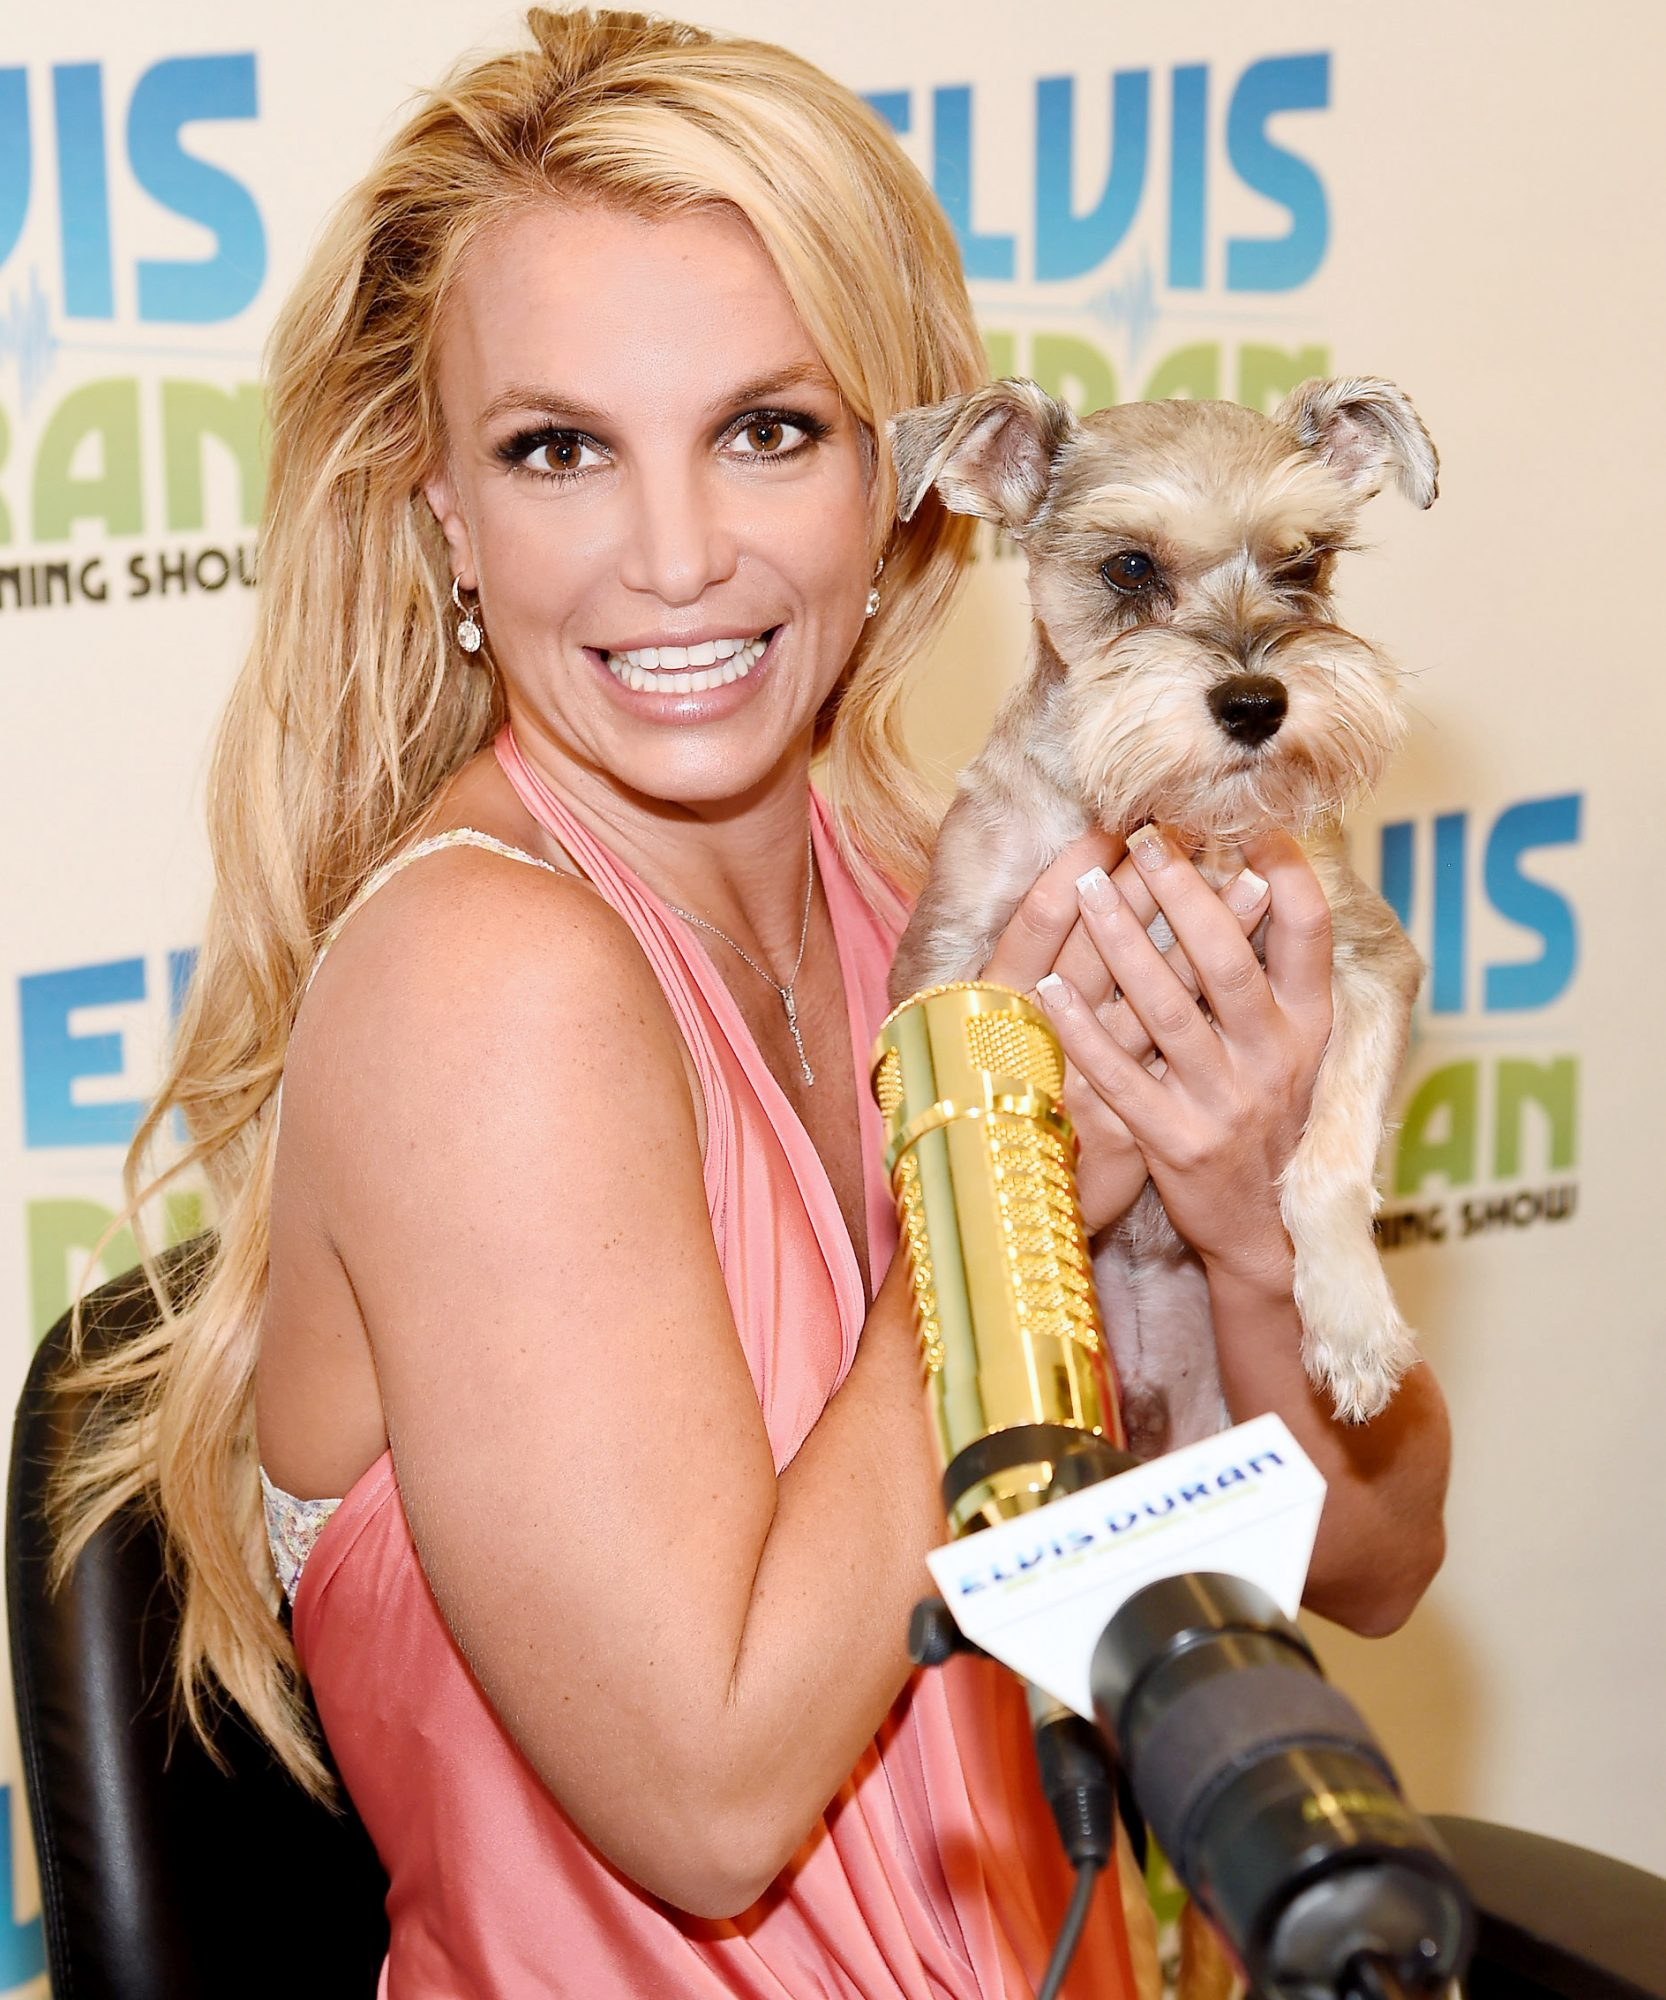 Britney Spears Cuddles with aSchnauzer in Honor of National Dog Day!